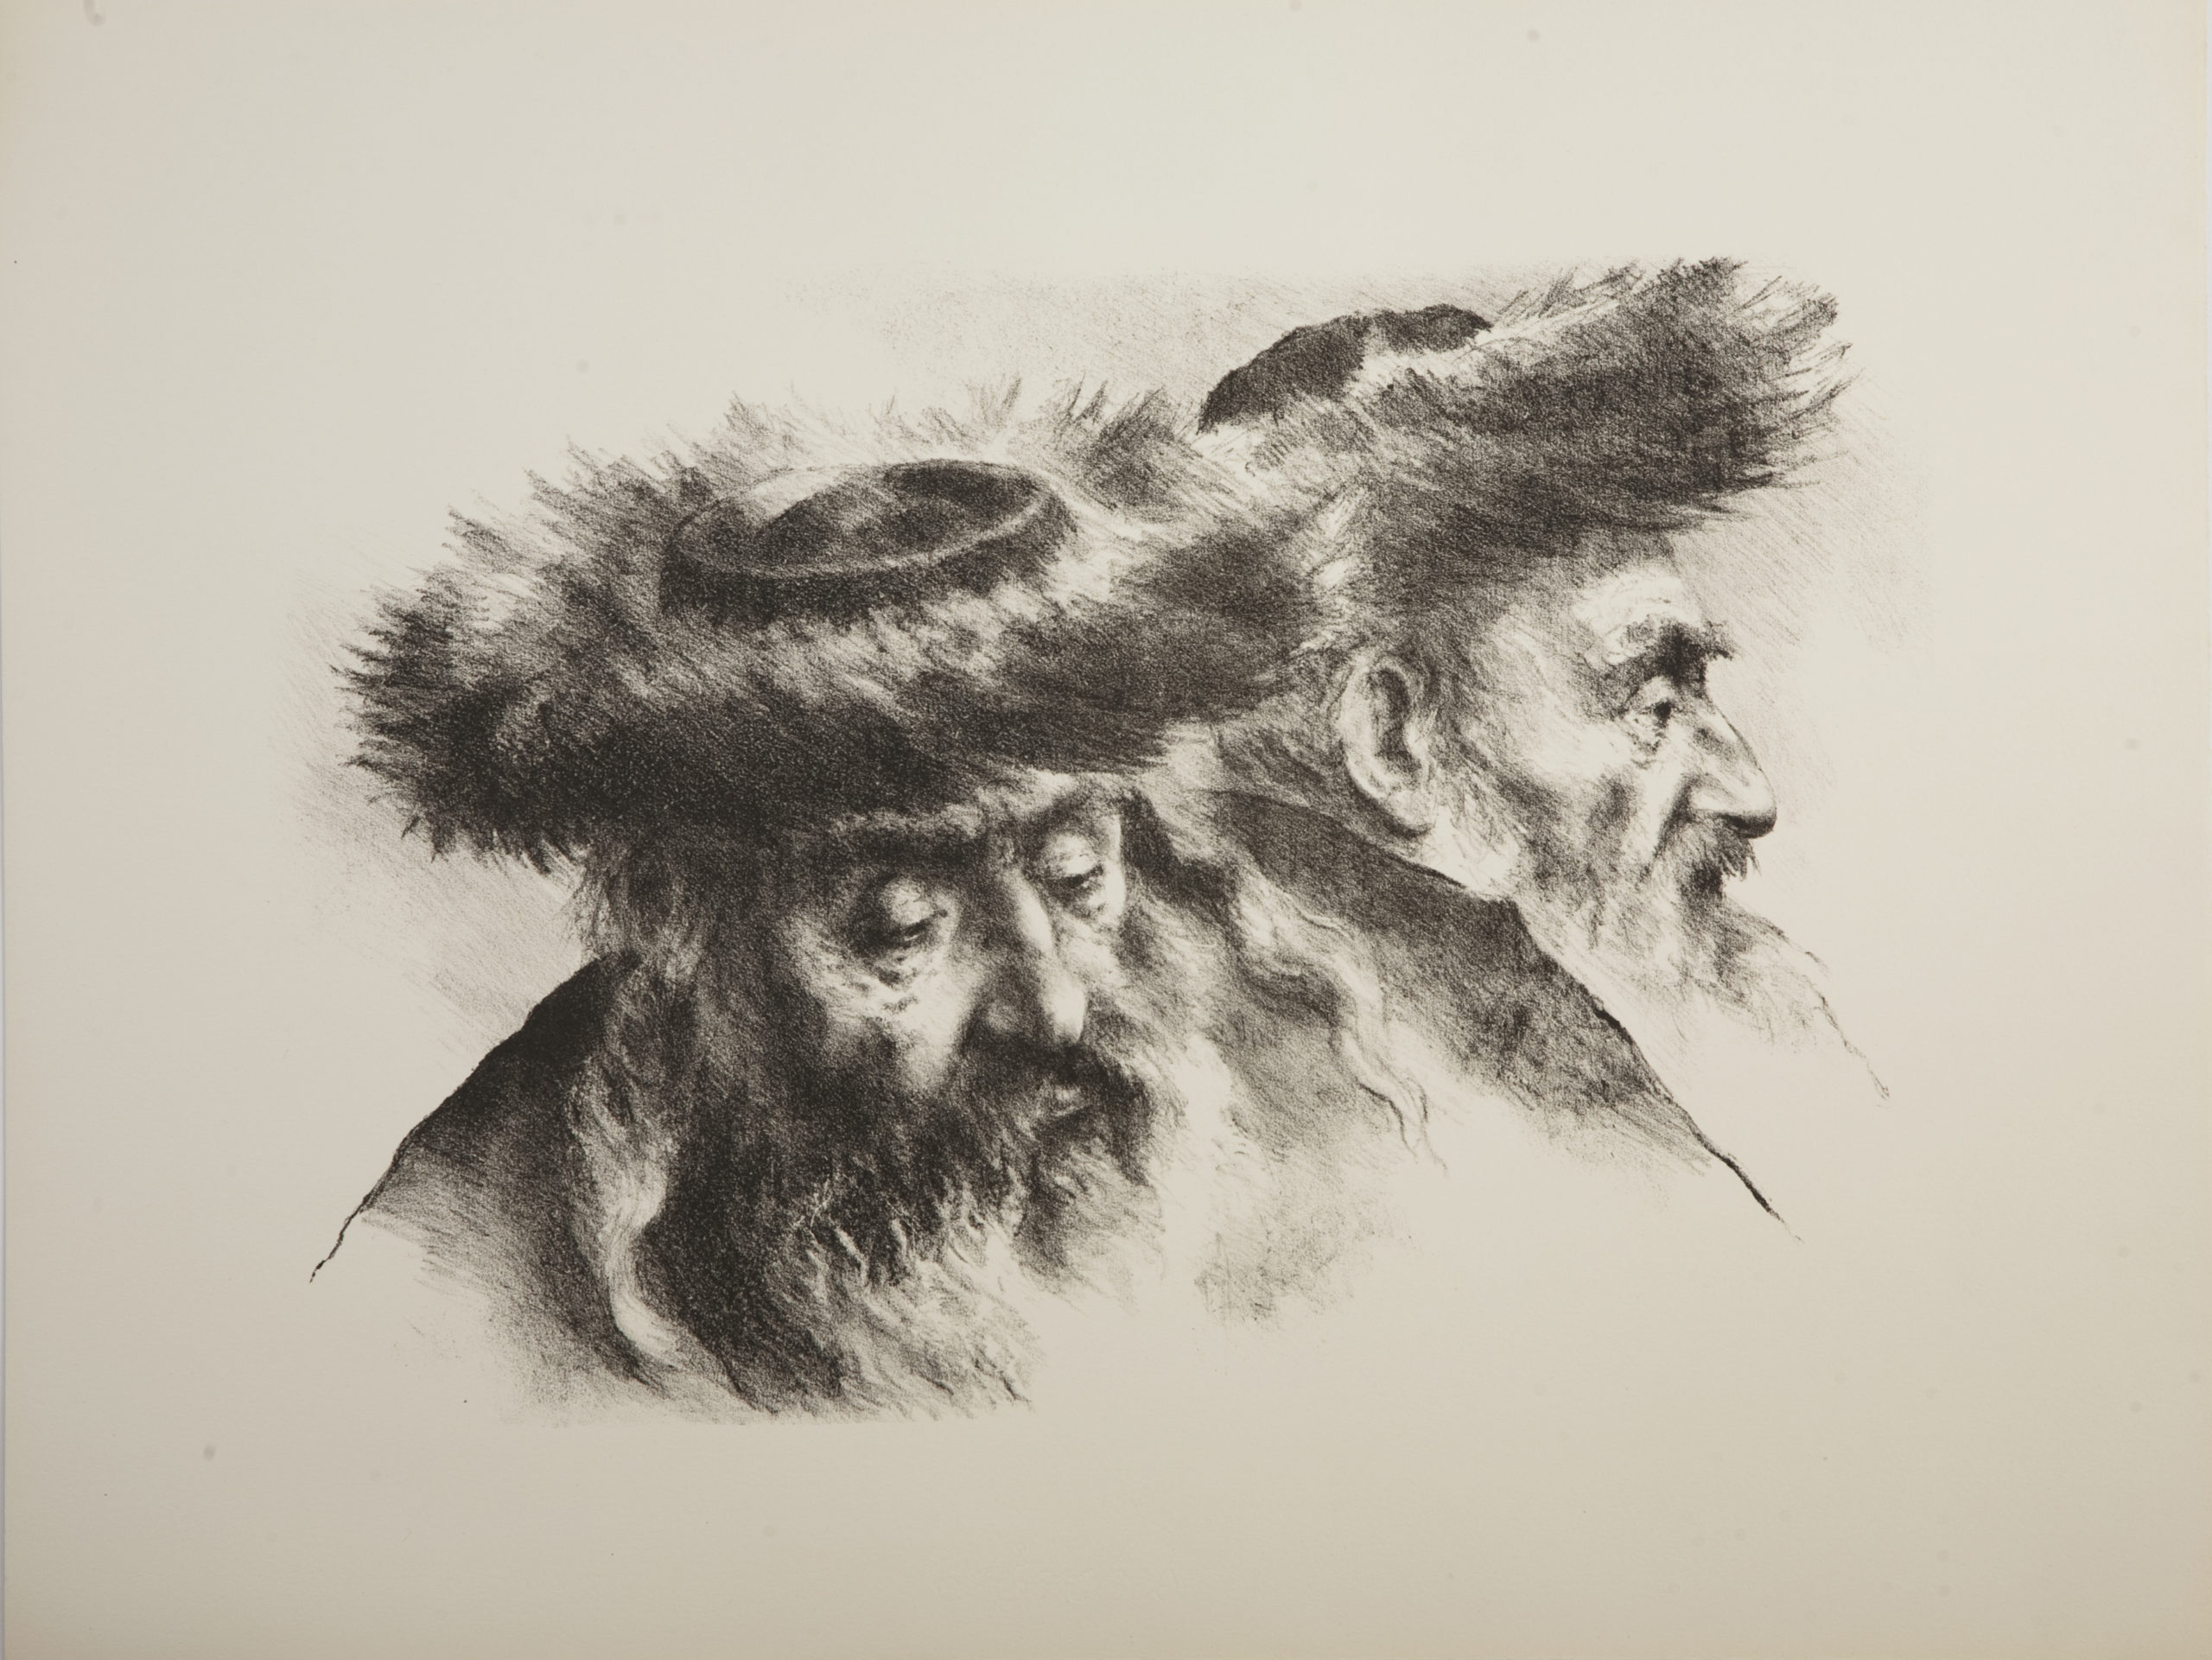 L04B 2 Chassidim - Black and White - Lithograph - 25.5 x 19 - No Frame - $420